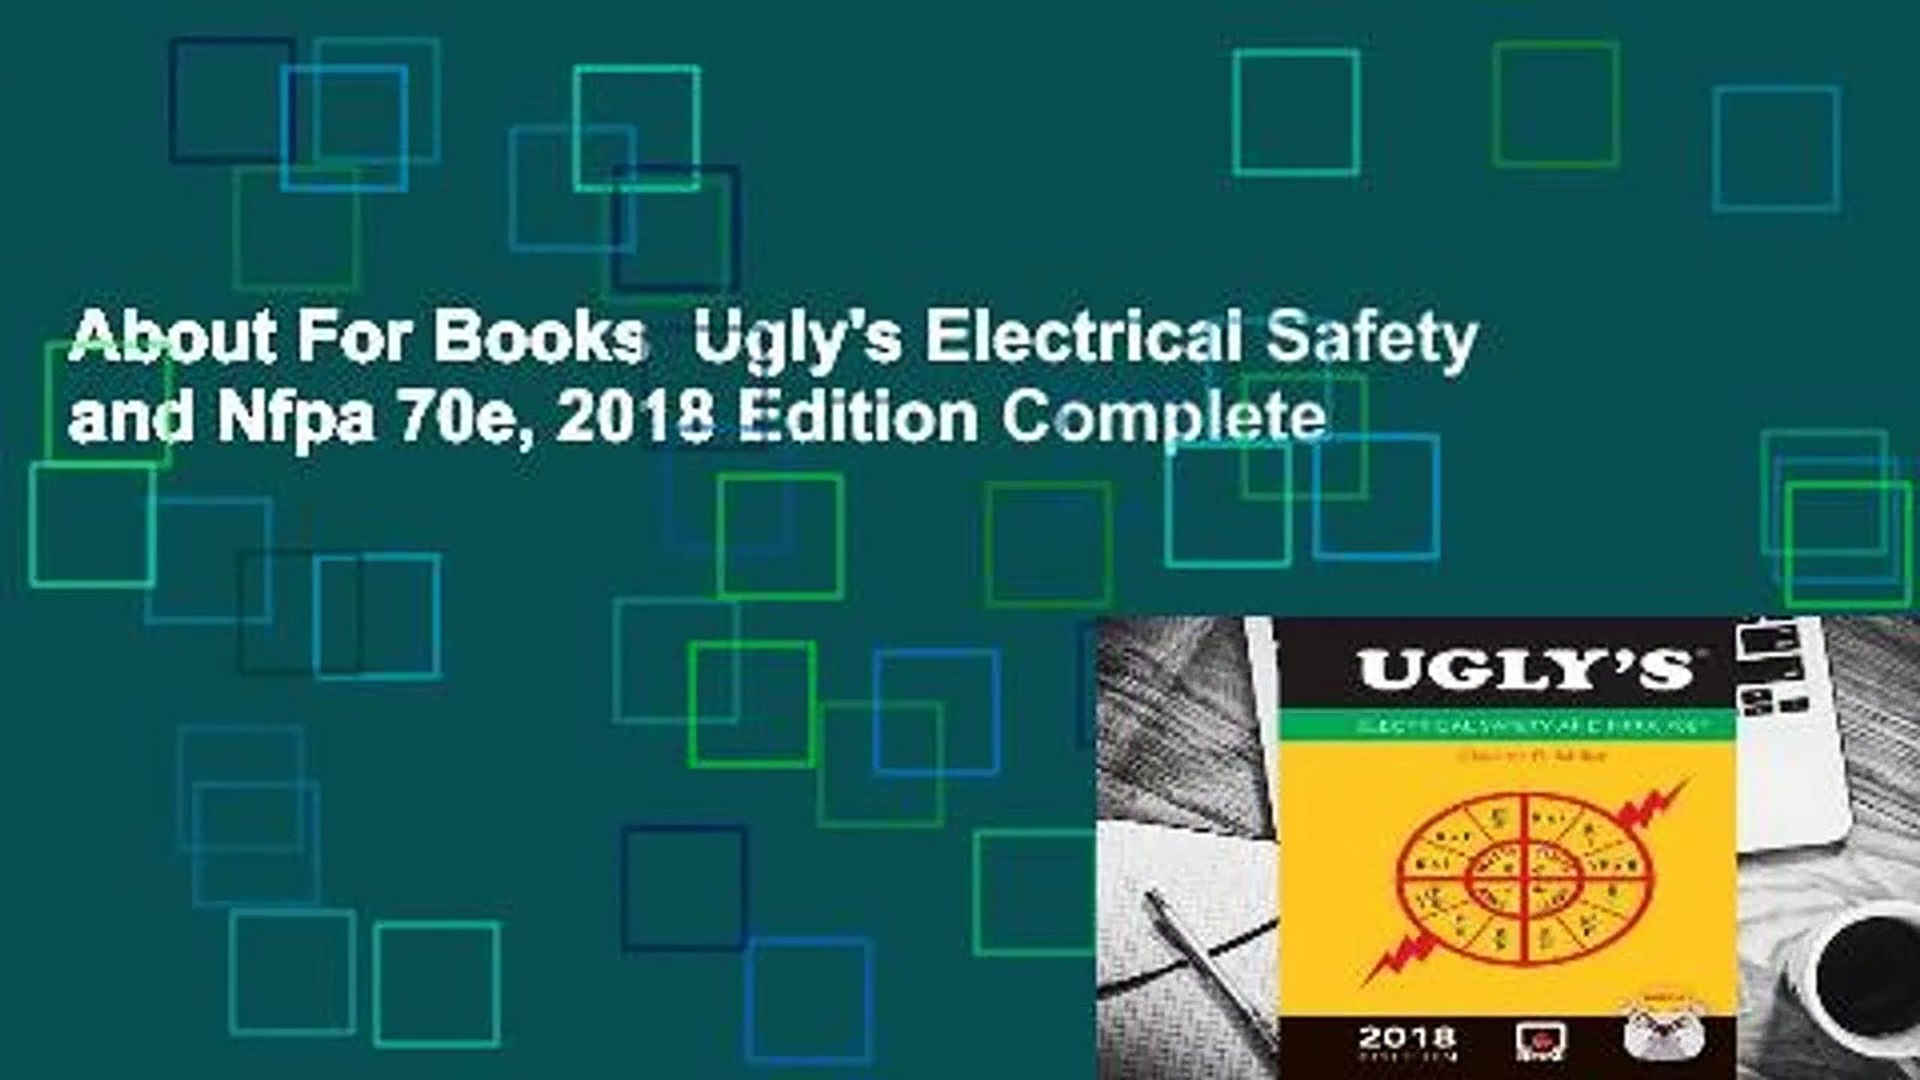 About For Books Ugly's Electrical Safety and Nfpa 70e, 2018 Edition Complete